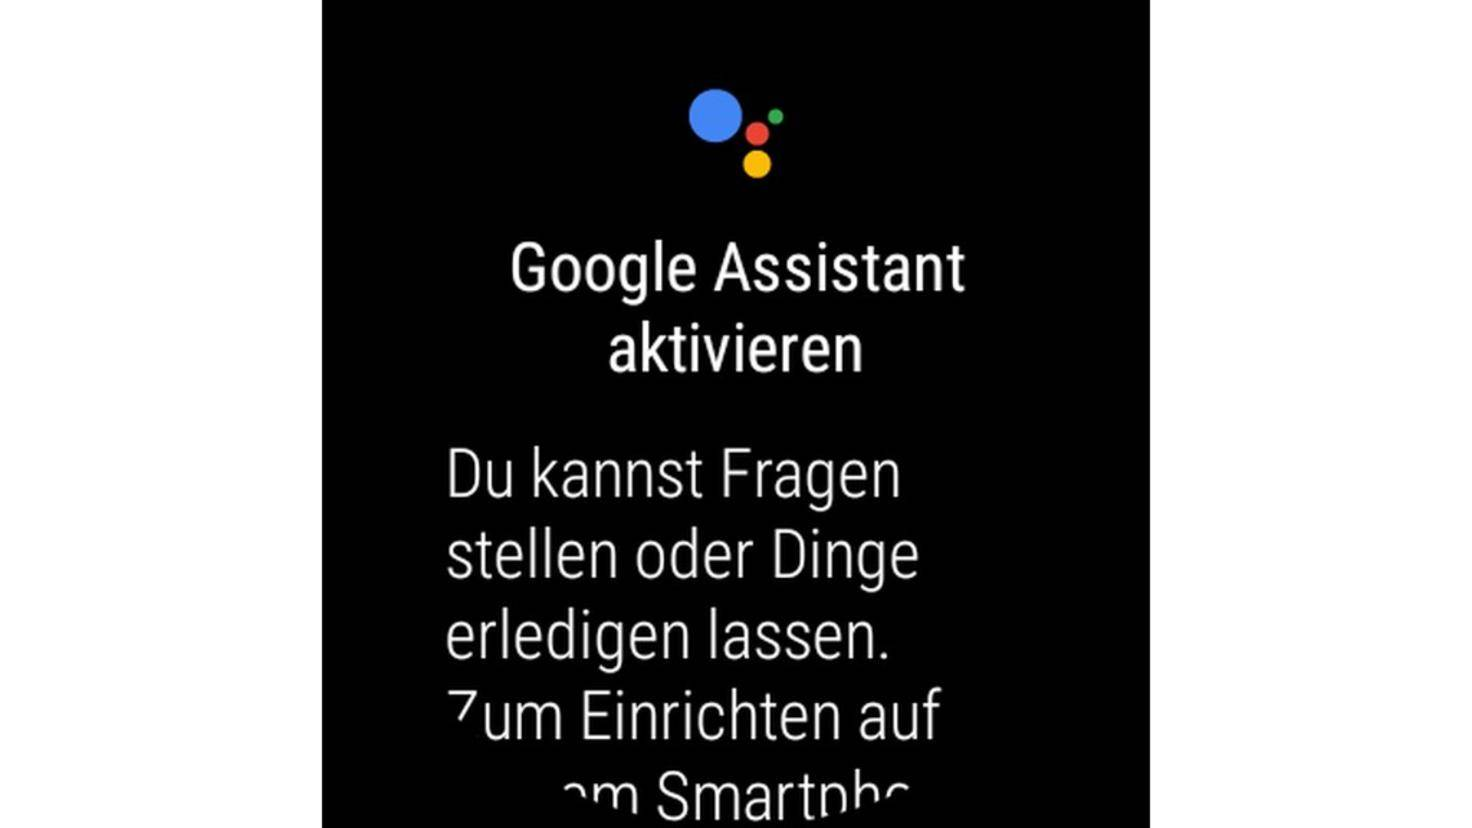 Android Wear 2.0 Google Assistant